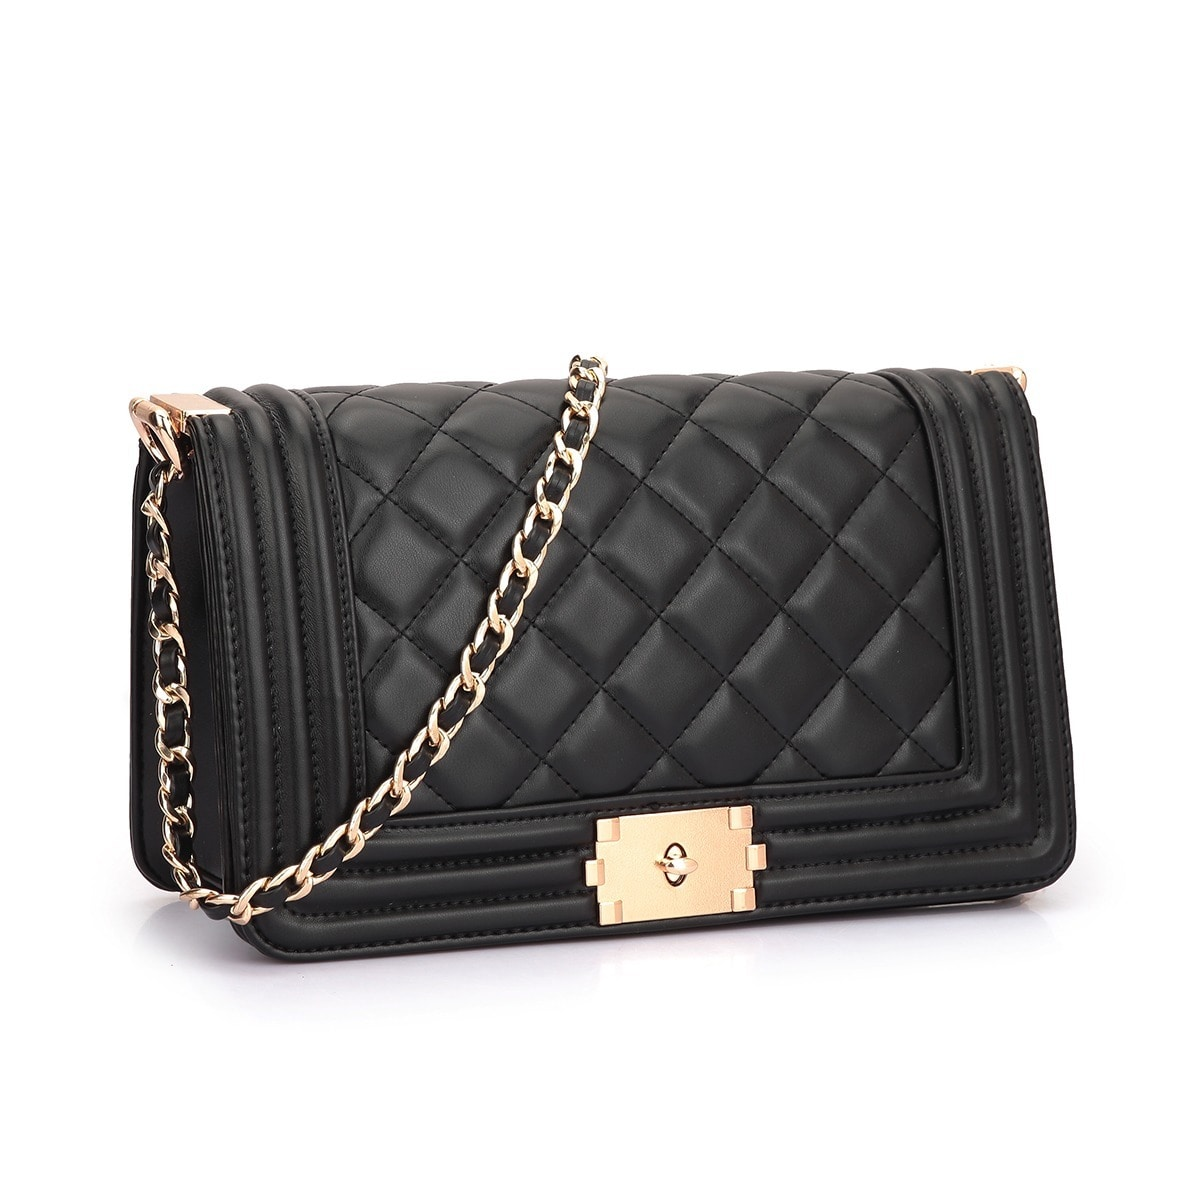 877ba59a39ed Dasein - Dasein Quilted Crossbody Bag with Intertwined Leather Goldtone  Chain Straps - Walmart.com